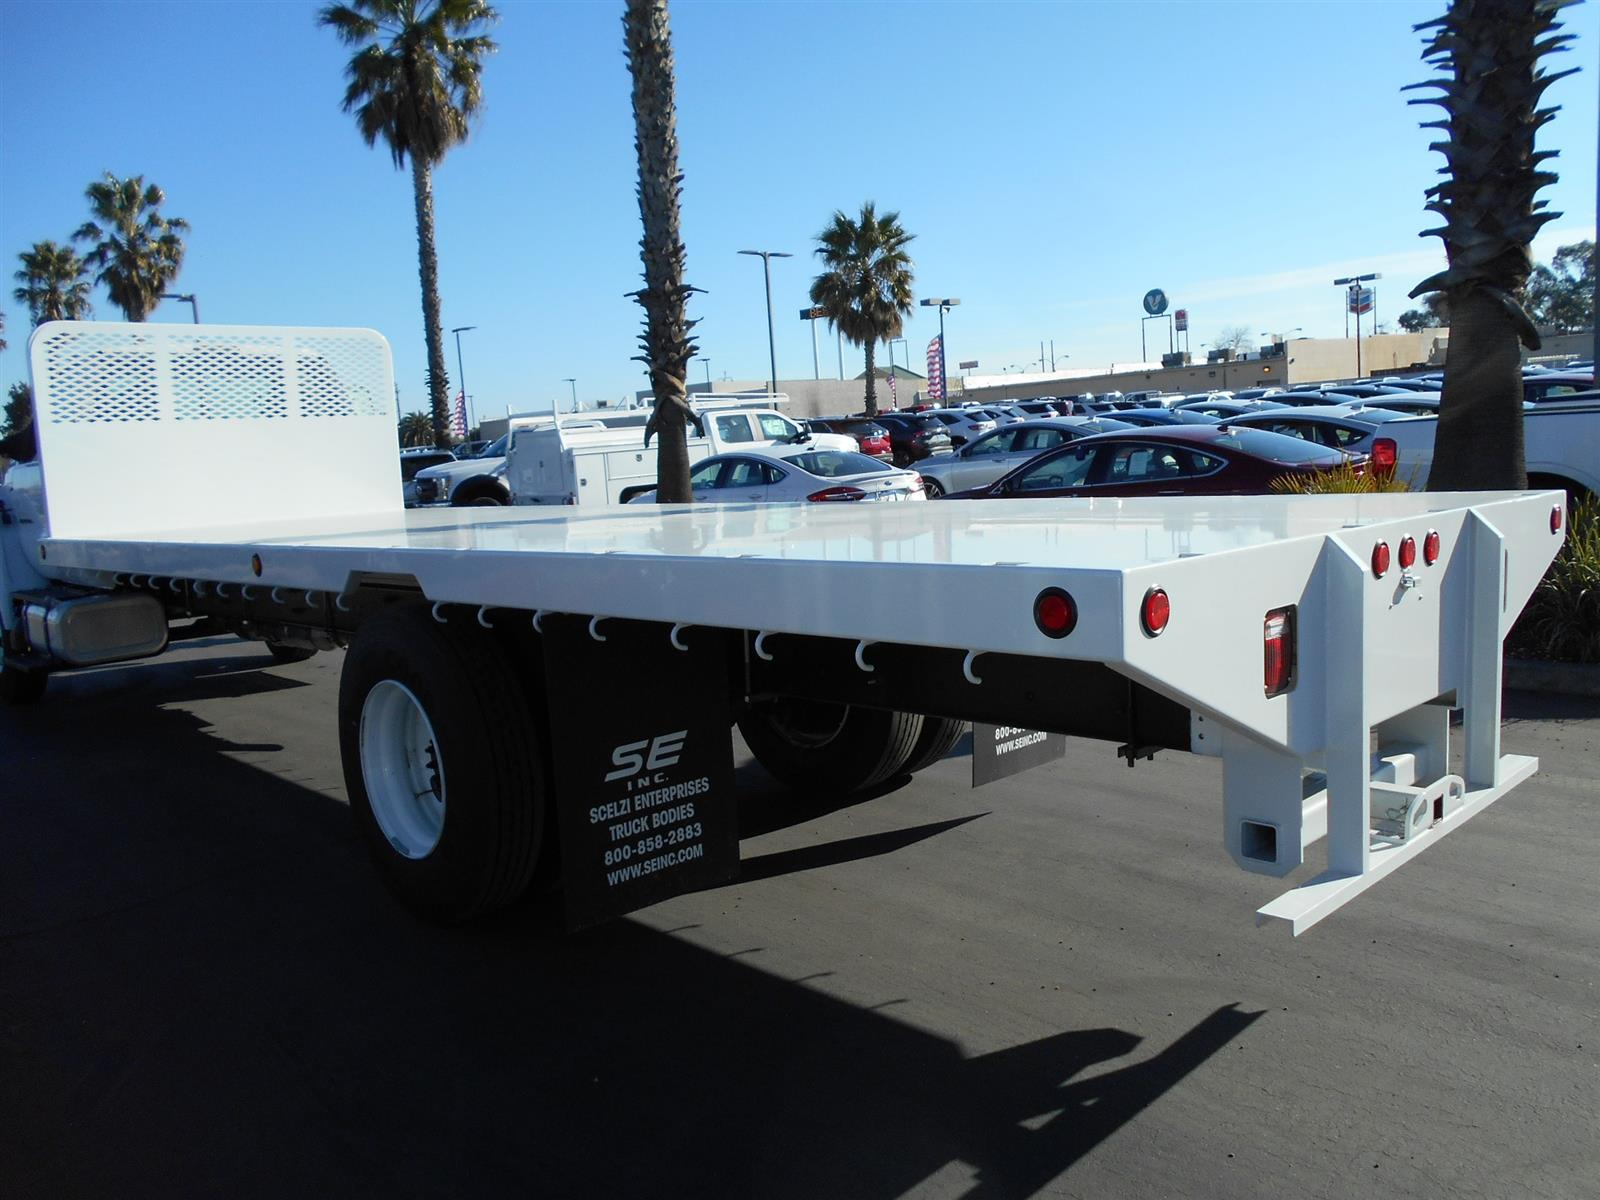 2019 Ford F-650 Regular Cab DRW 4x2, Scelzi Platform Body #57259 - photo 1